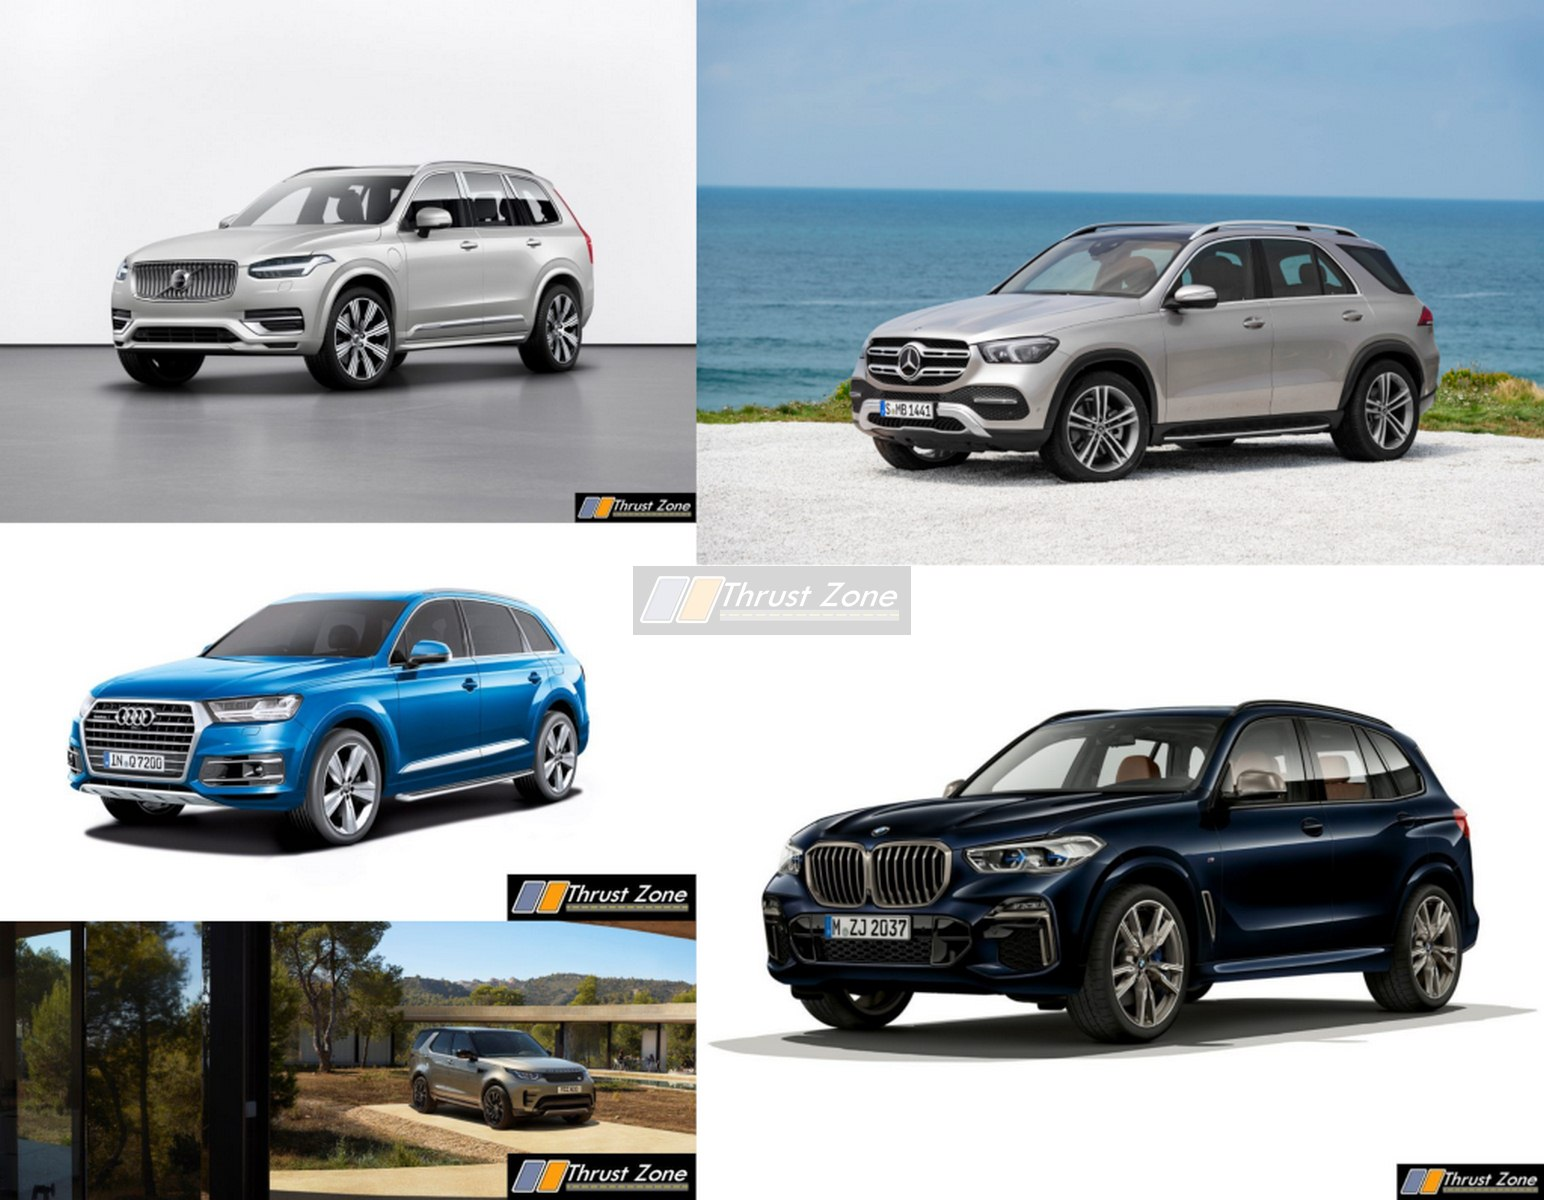 2019 BMW X5 Vs Land Rover Discovery vs Audi Q7 vs Mercedes GLE vs Volvo XC90